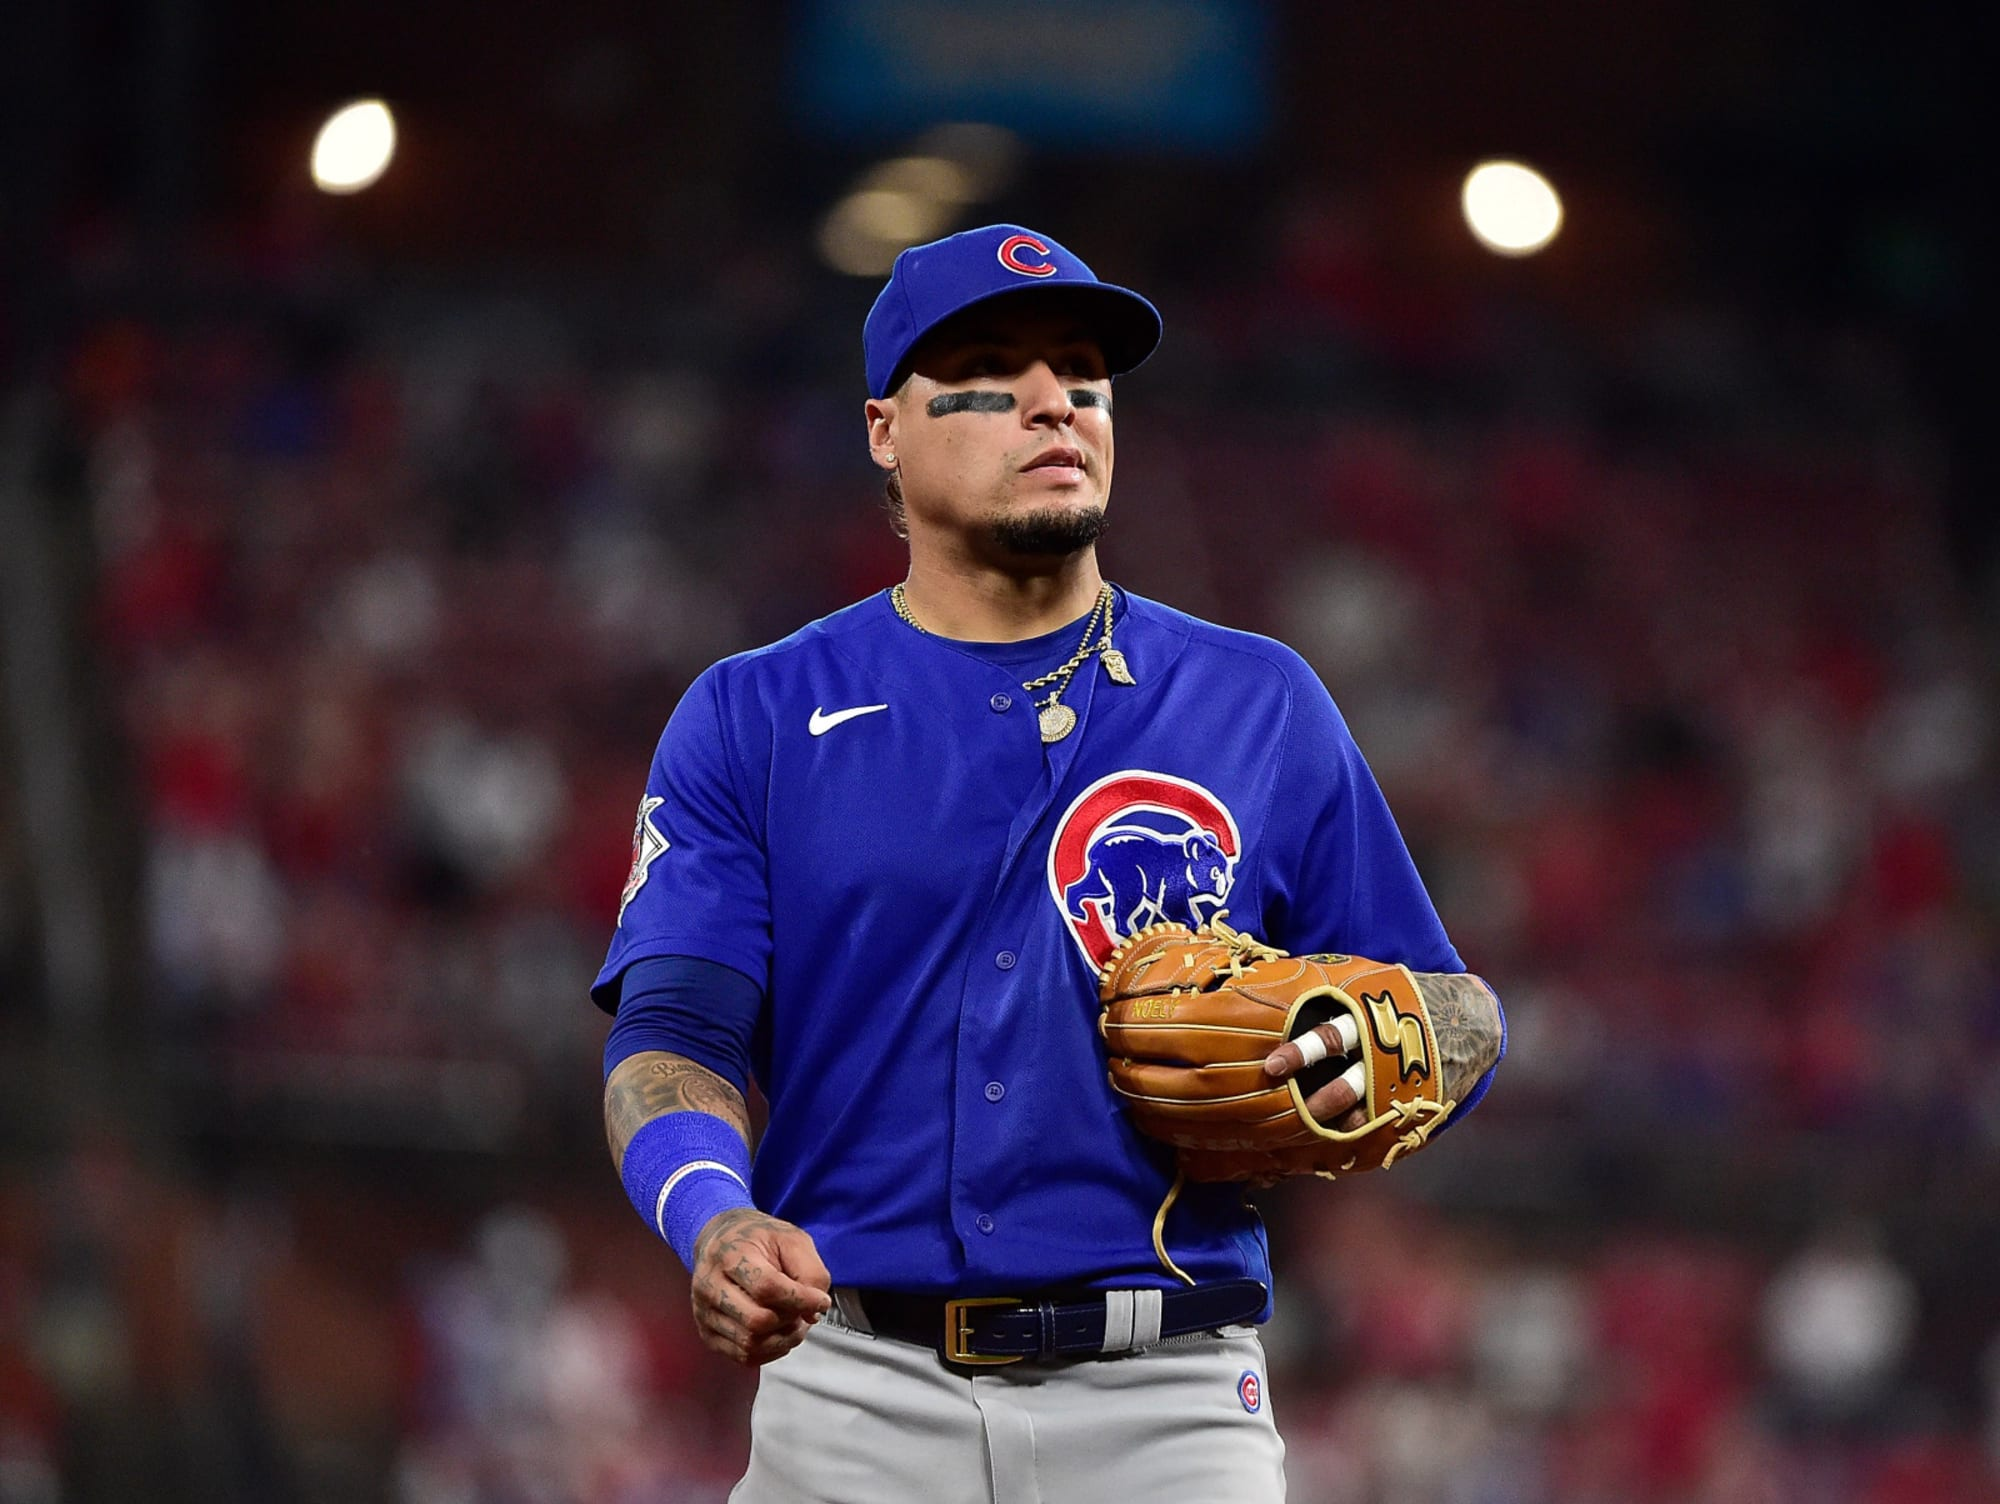 Cubs trade Javy Baez to Mets: Twitter reacts to Cubs fire sale, Mets pairing Baez with Lindor